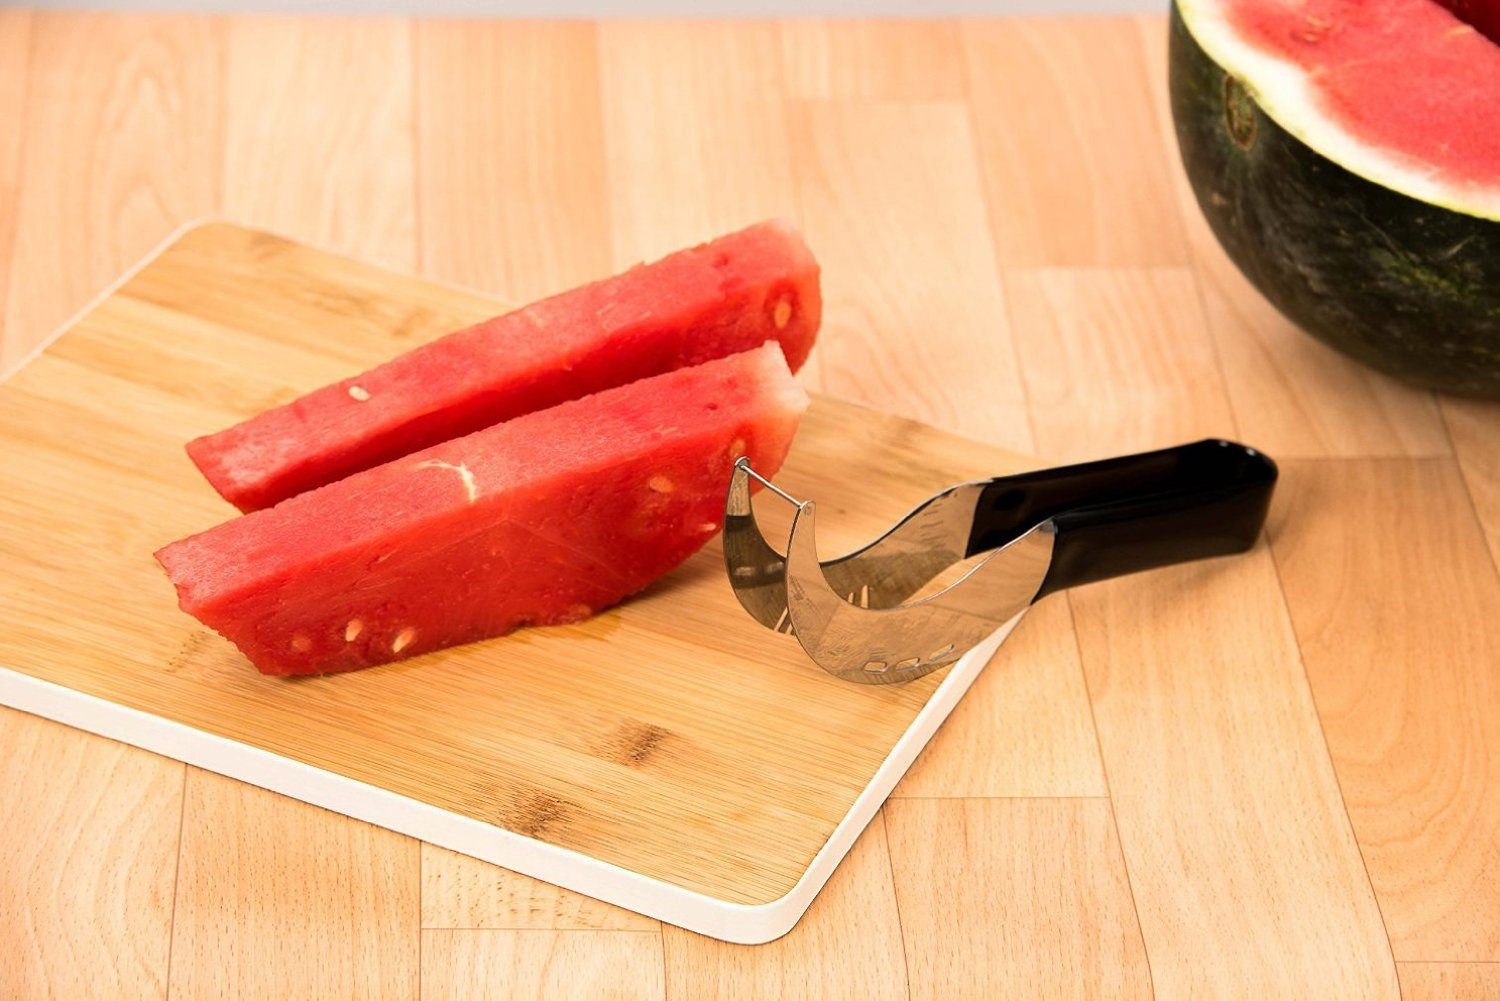 EH-LIFE Watermelon Slicer Corer Cutter Serve Tools with Easy Grip Comfortable Handle, Stainless Steel Home Kitchen Utensil by EH-LIFE (Image #6)